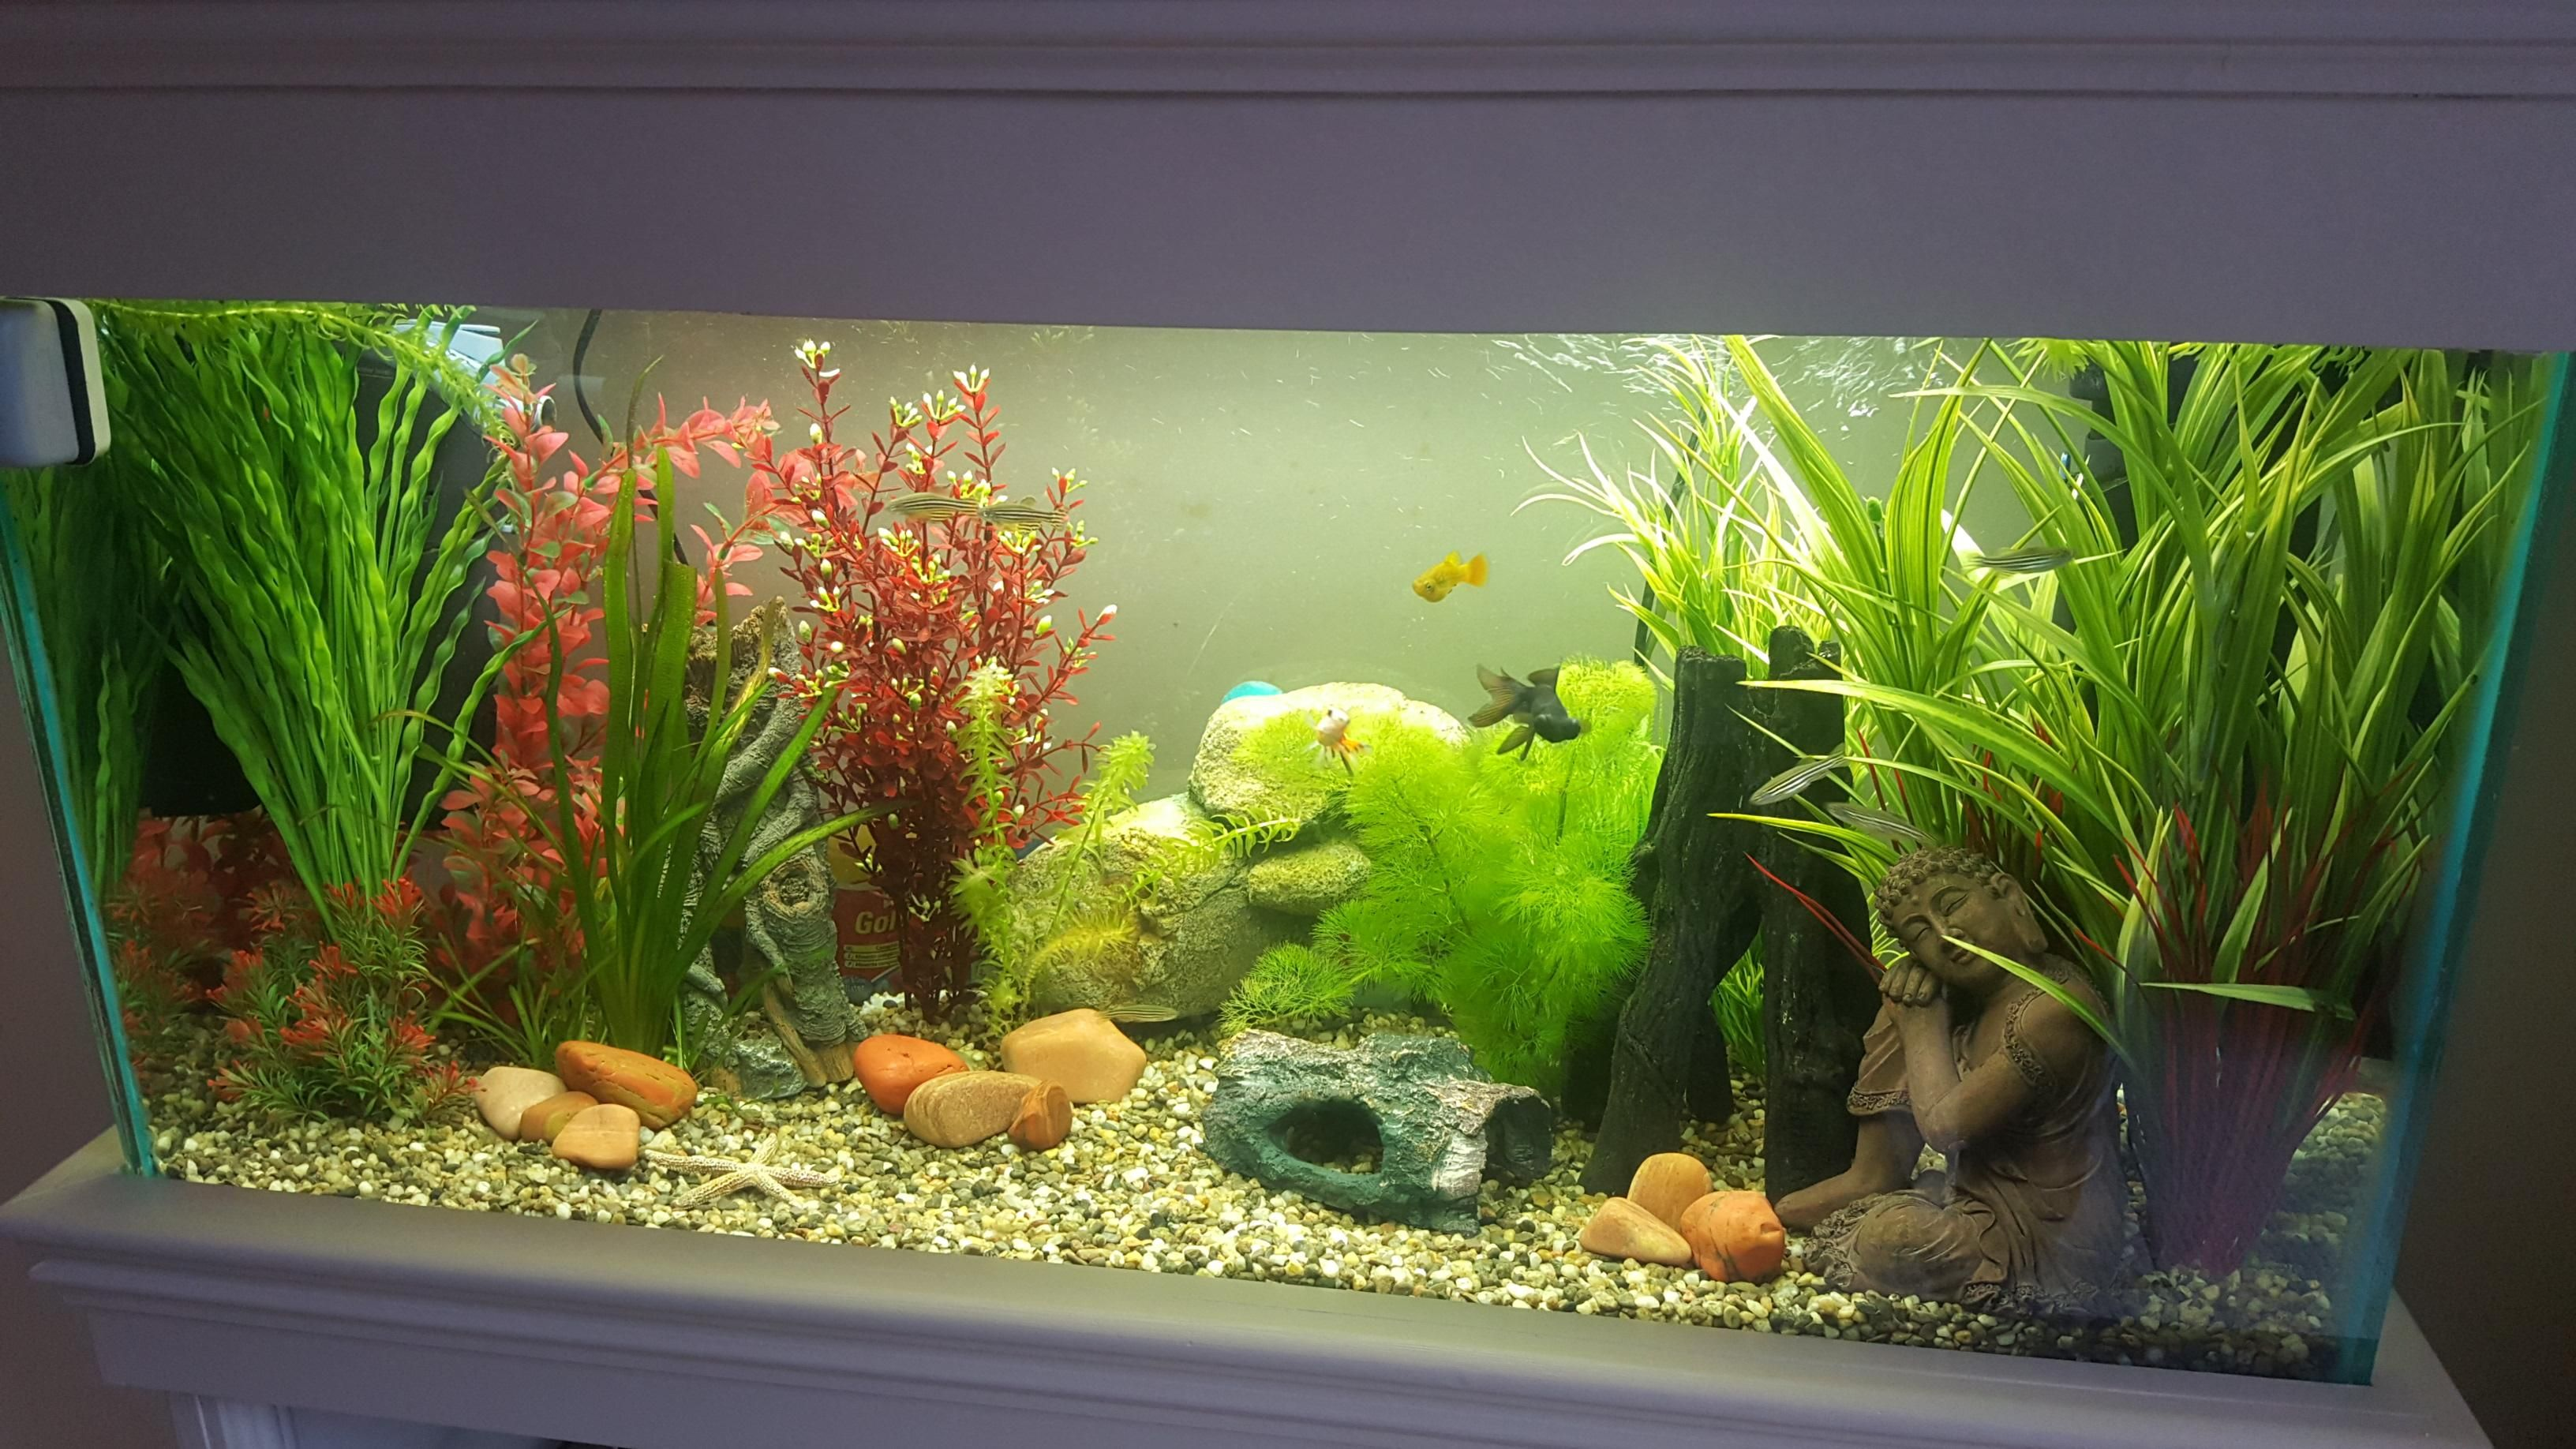 Fish for big aquarium - First Big Aquarium About 2 Months Old 11 Fish In Total Still Learning